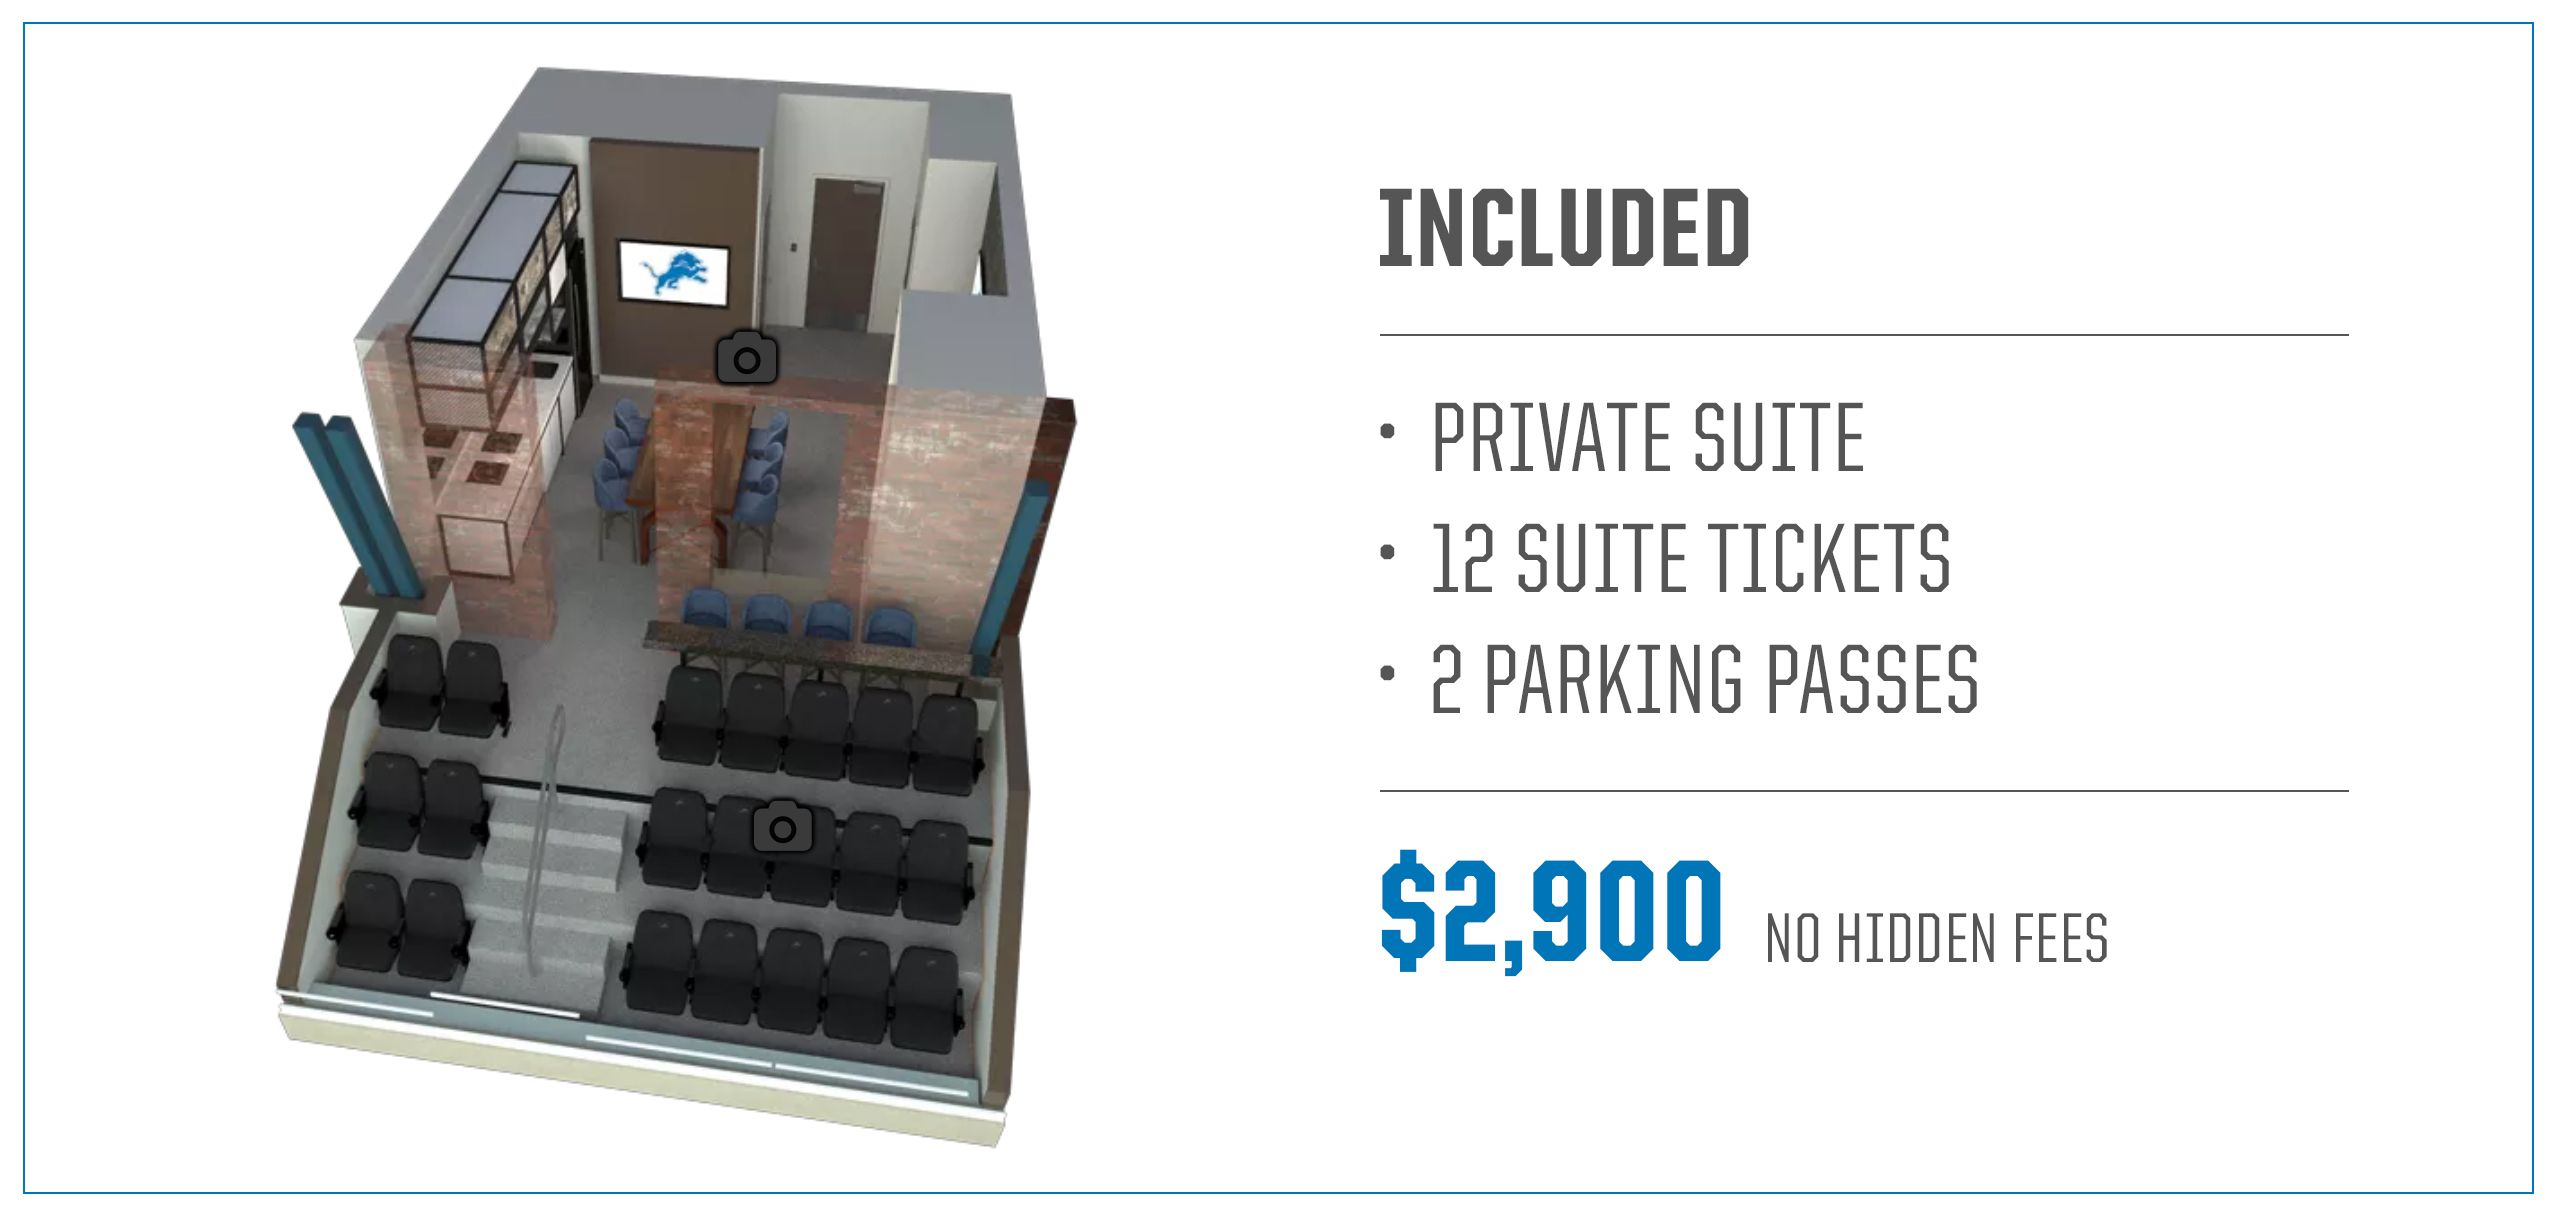 suite-purchase-information-map